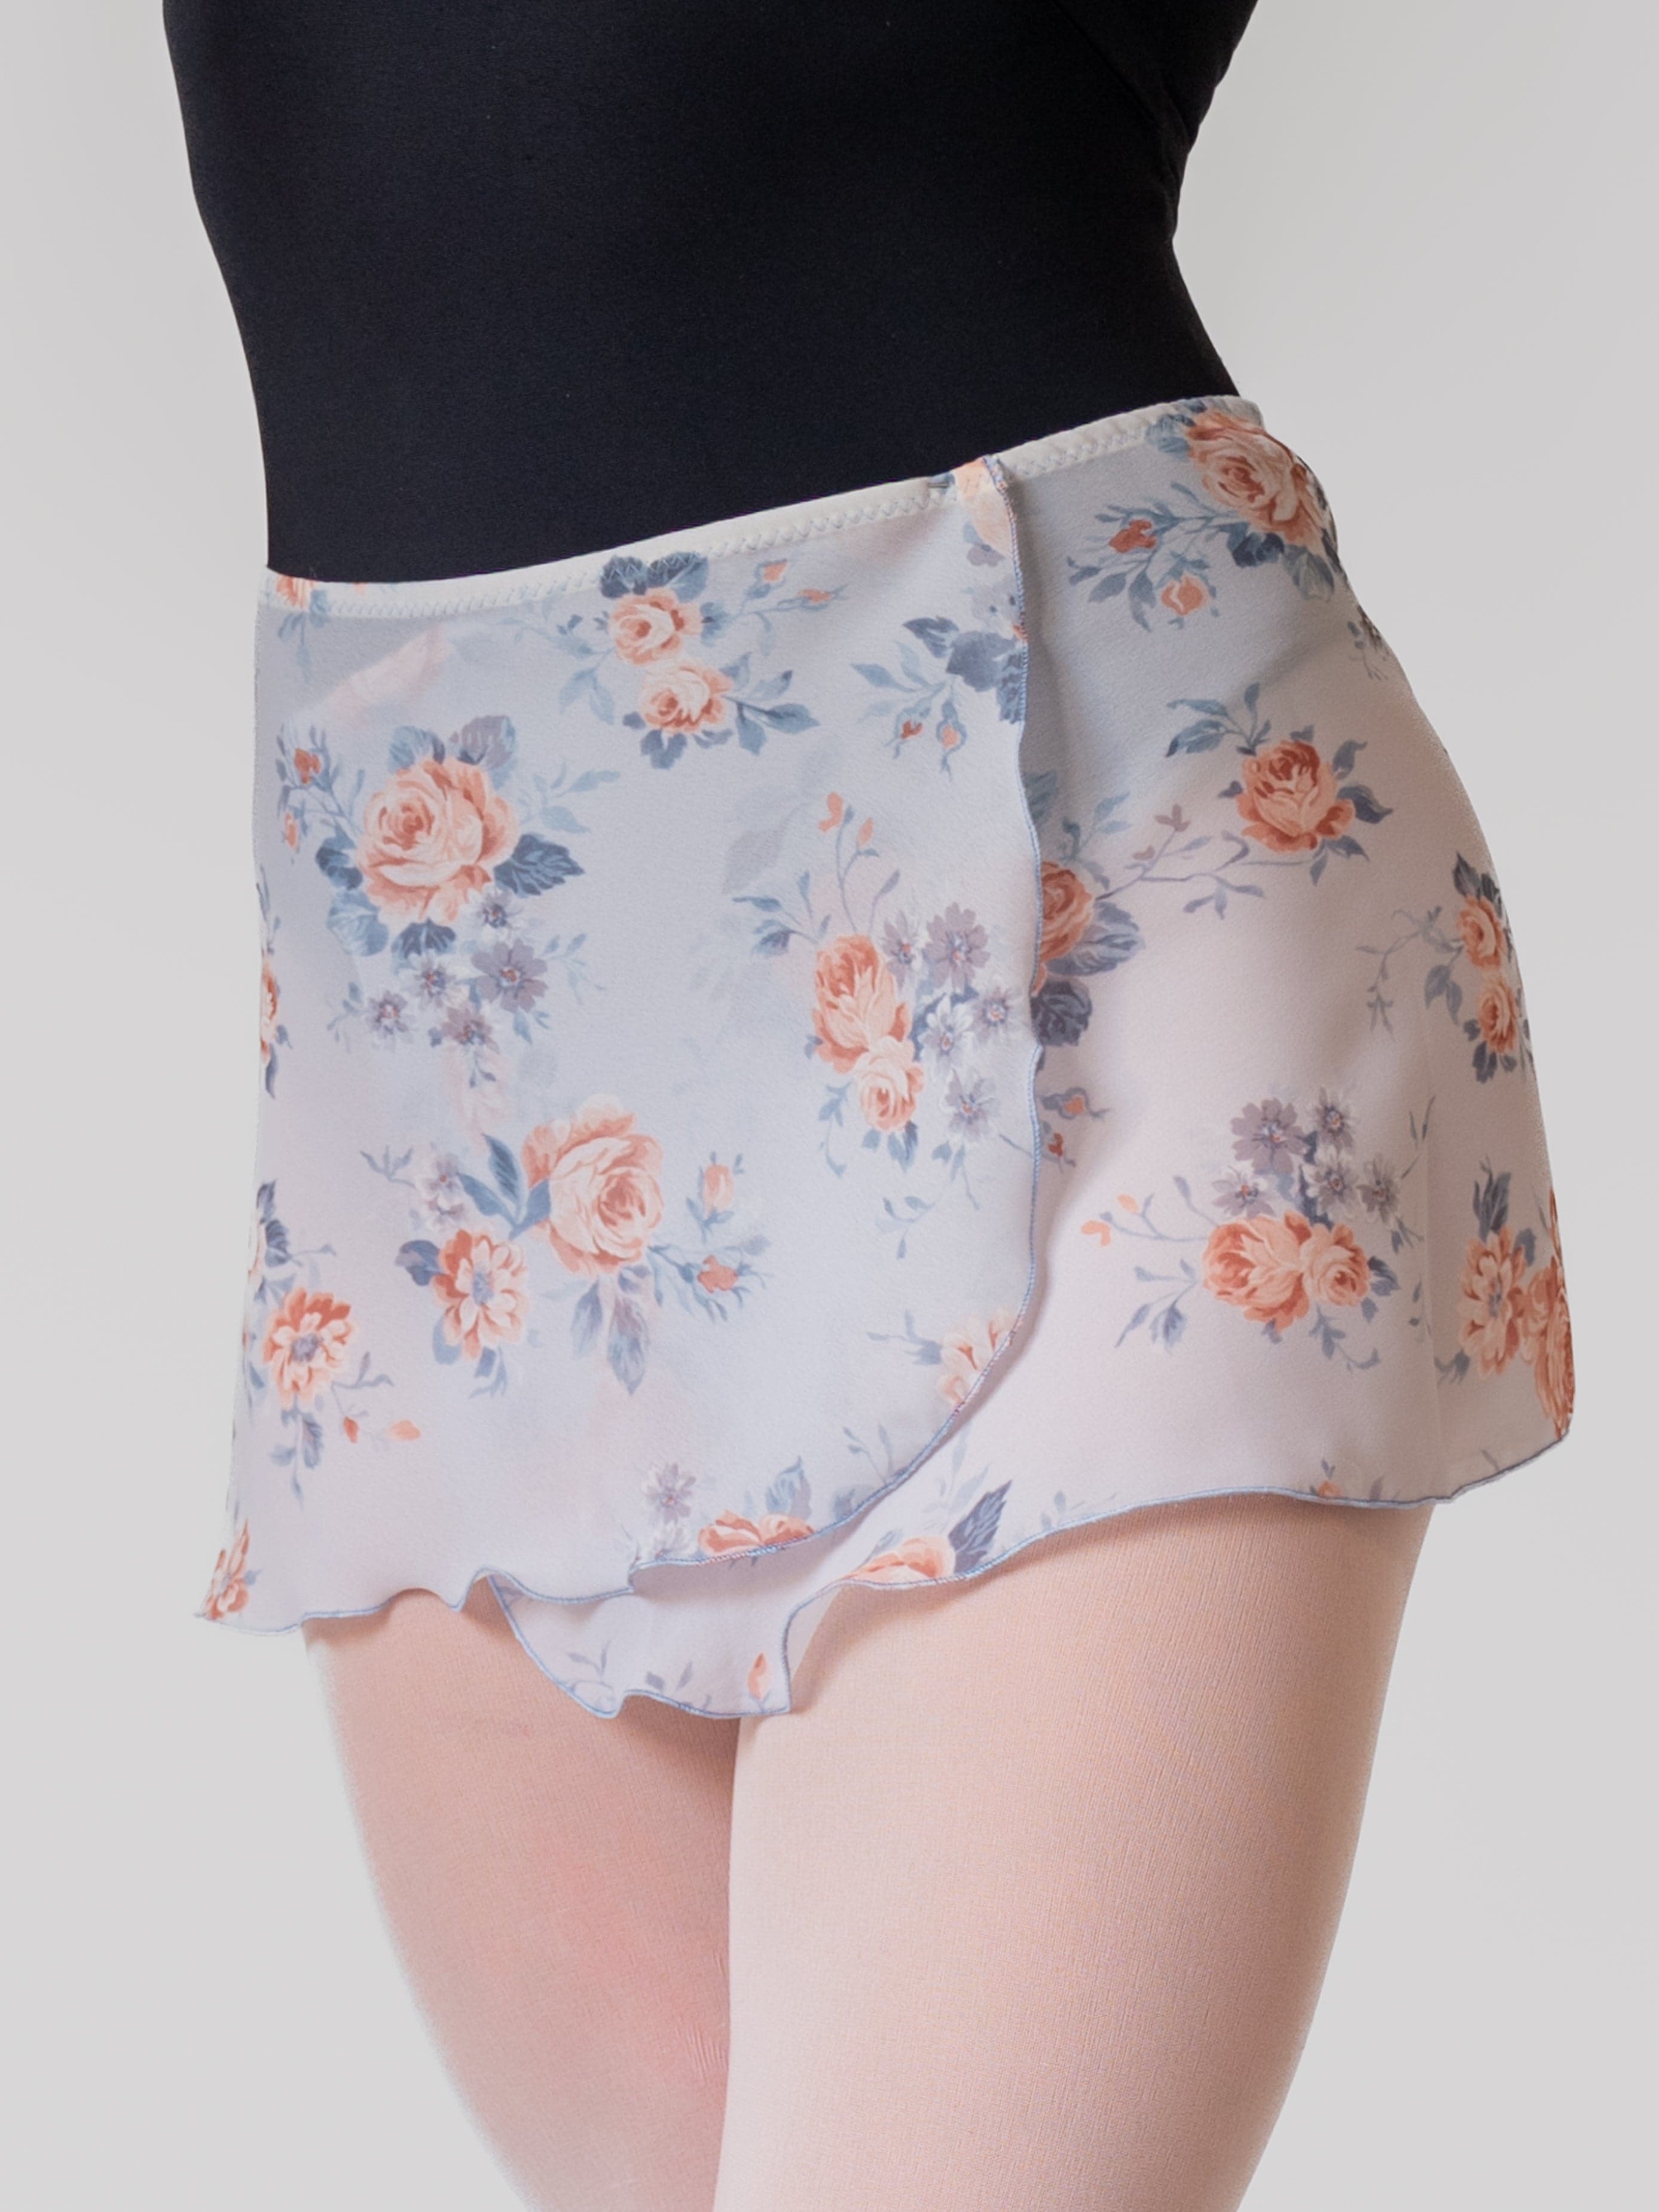 Floral Sky Blue Wrap Short Dance Skirt for Girls and Women in Georgette by Atelier della Danza MP